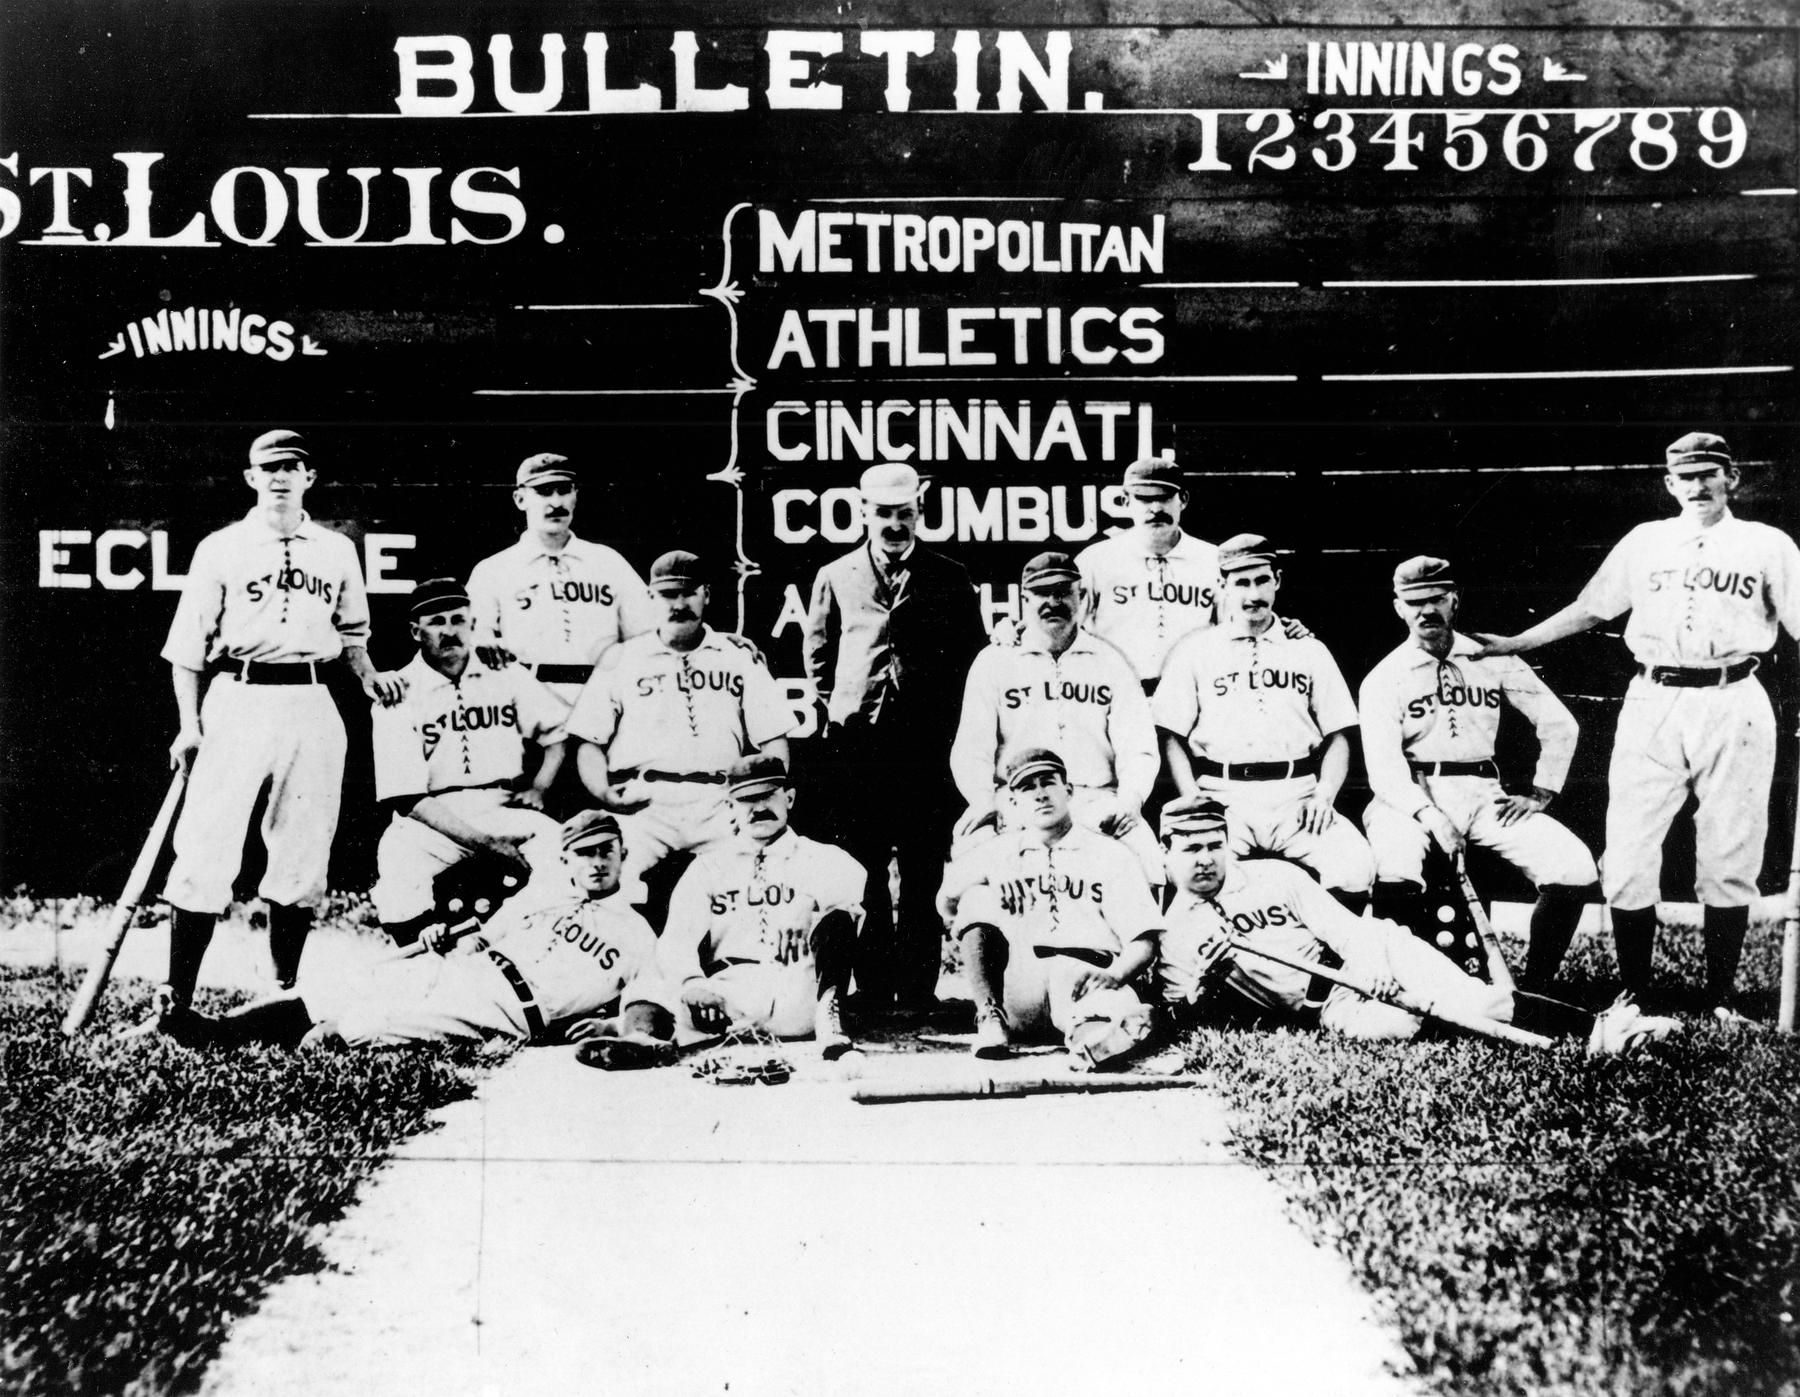 The St. Louis Browns, with von der Ahe in the center, pose for a team photograph. BL-4594.96 (National Baseball Hall of Fame Library)